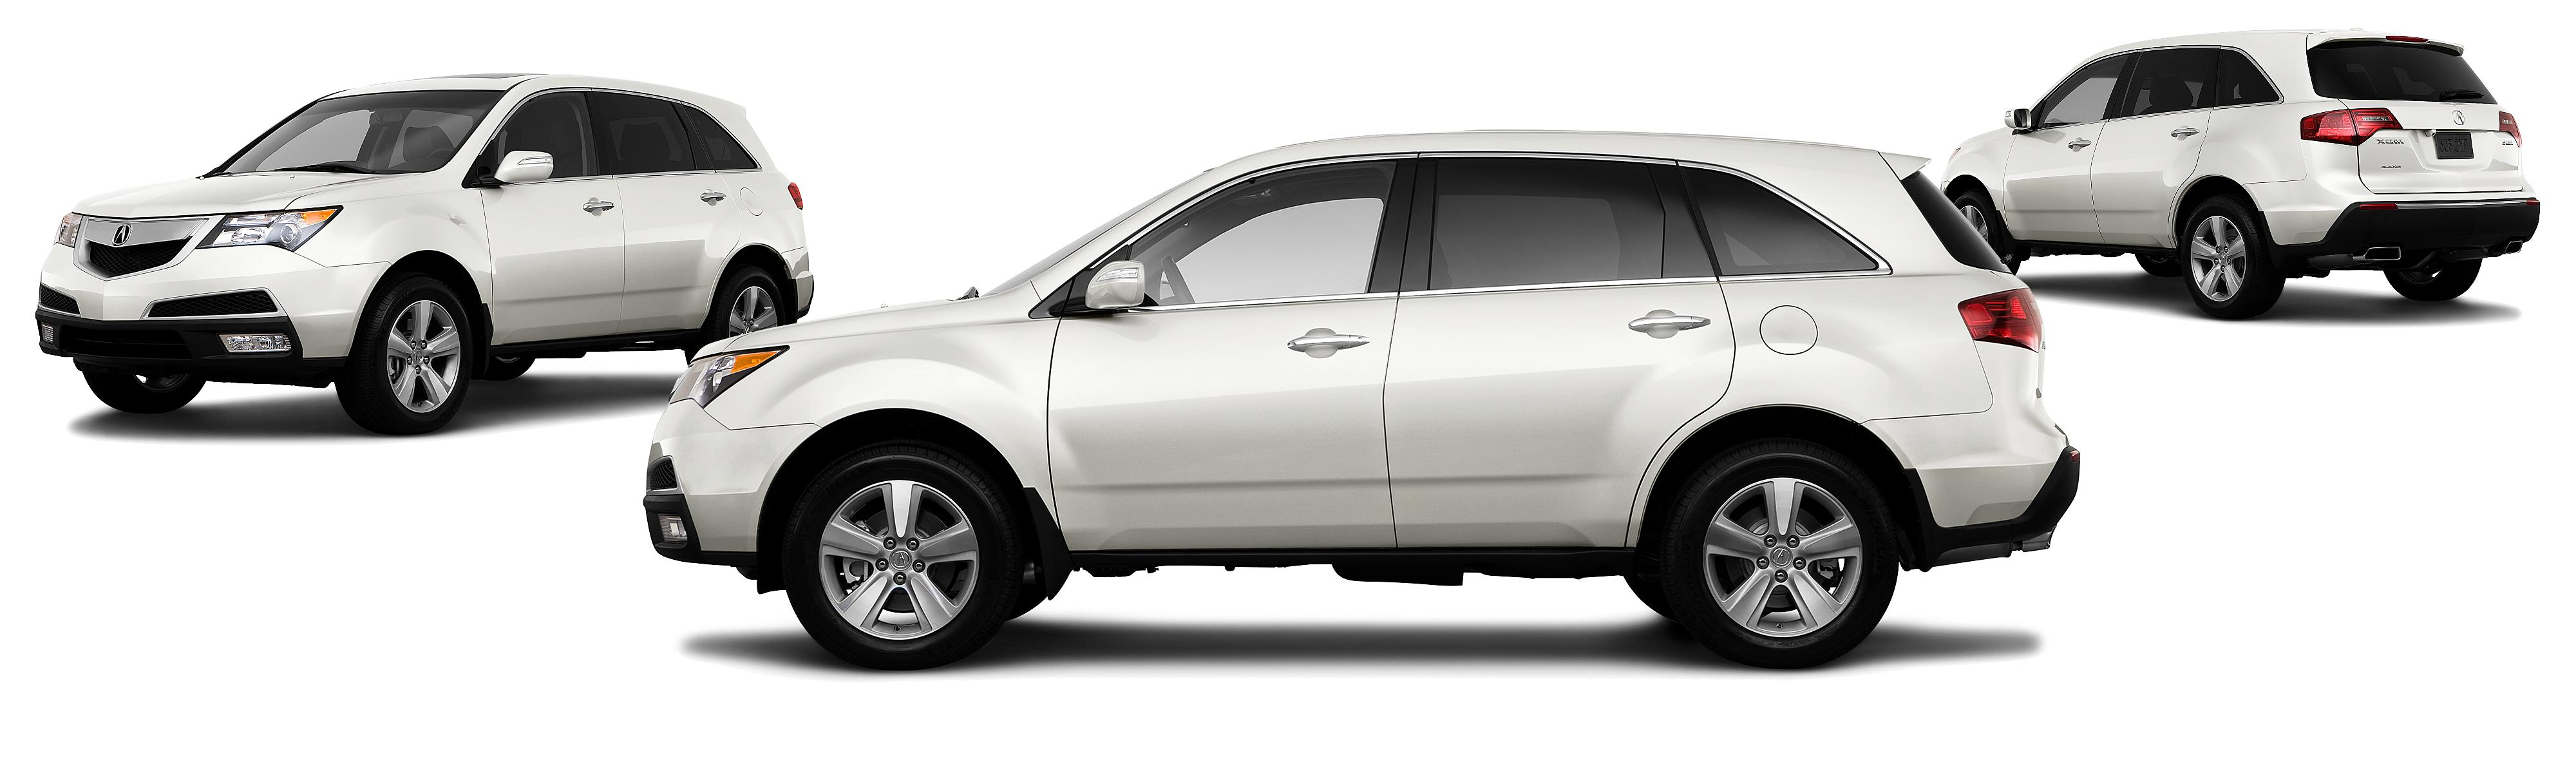 cars acura top speed mdx